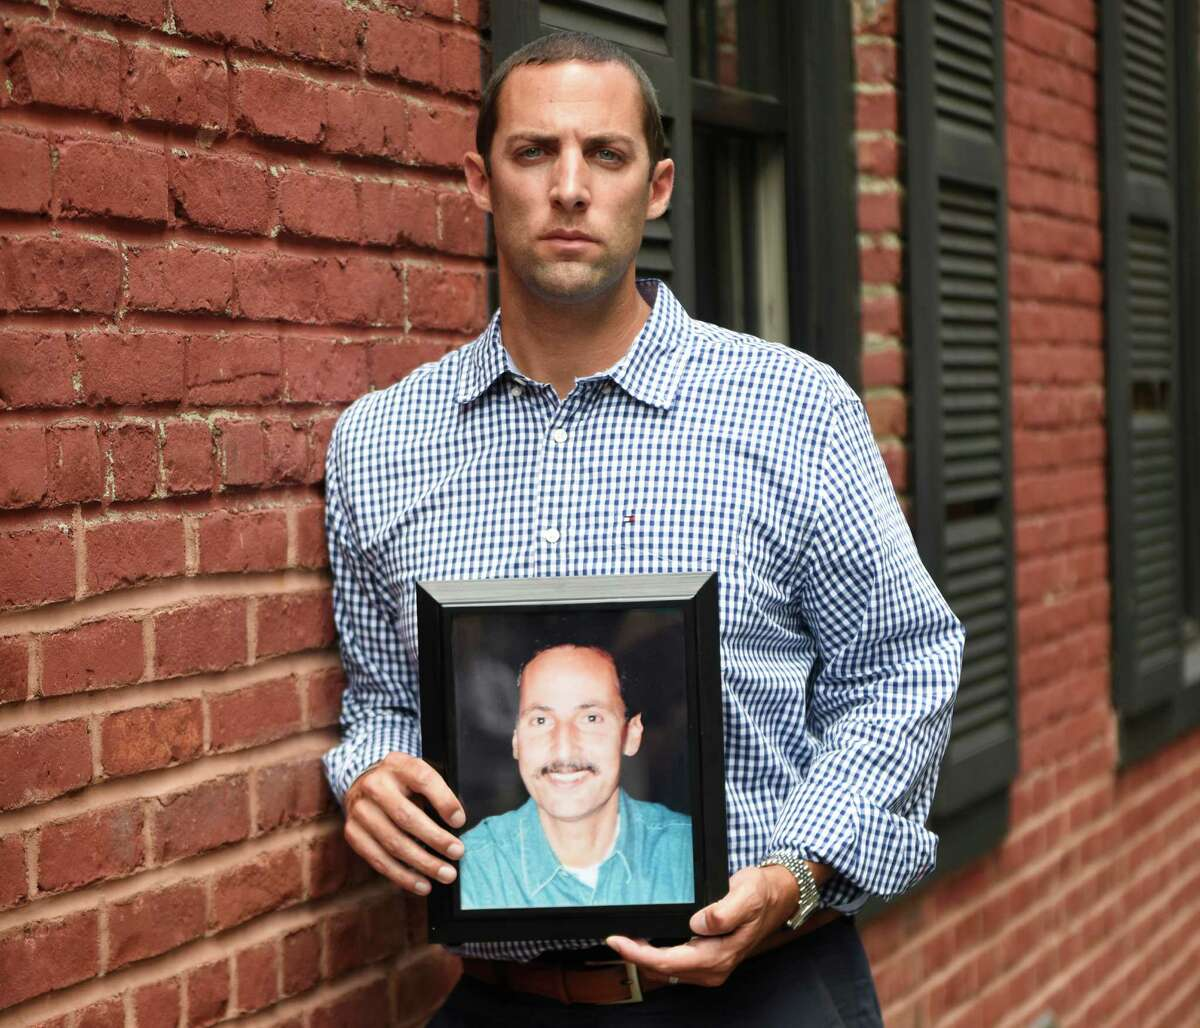 Michael Pascuma poses with a photograph of his father, also named Michael, in midtown Manhattan recently. Pascuma lost his father, a successful stock broker at the American Stock Exchange, in the World Trade Center attacks on Sept. 11, 2001. Michael graduated from Sacred Heart University in Fairfield with a double major and two minors. He now works as chief operating officer and head of business development at Solve Advisors.